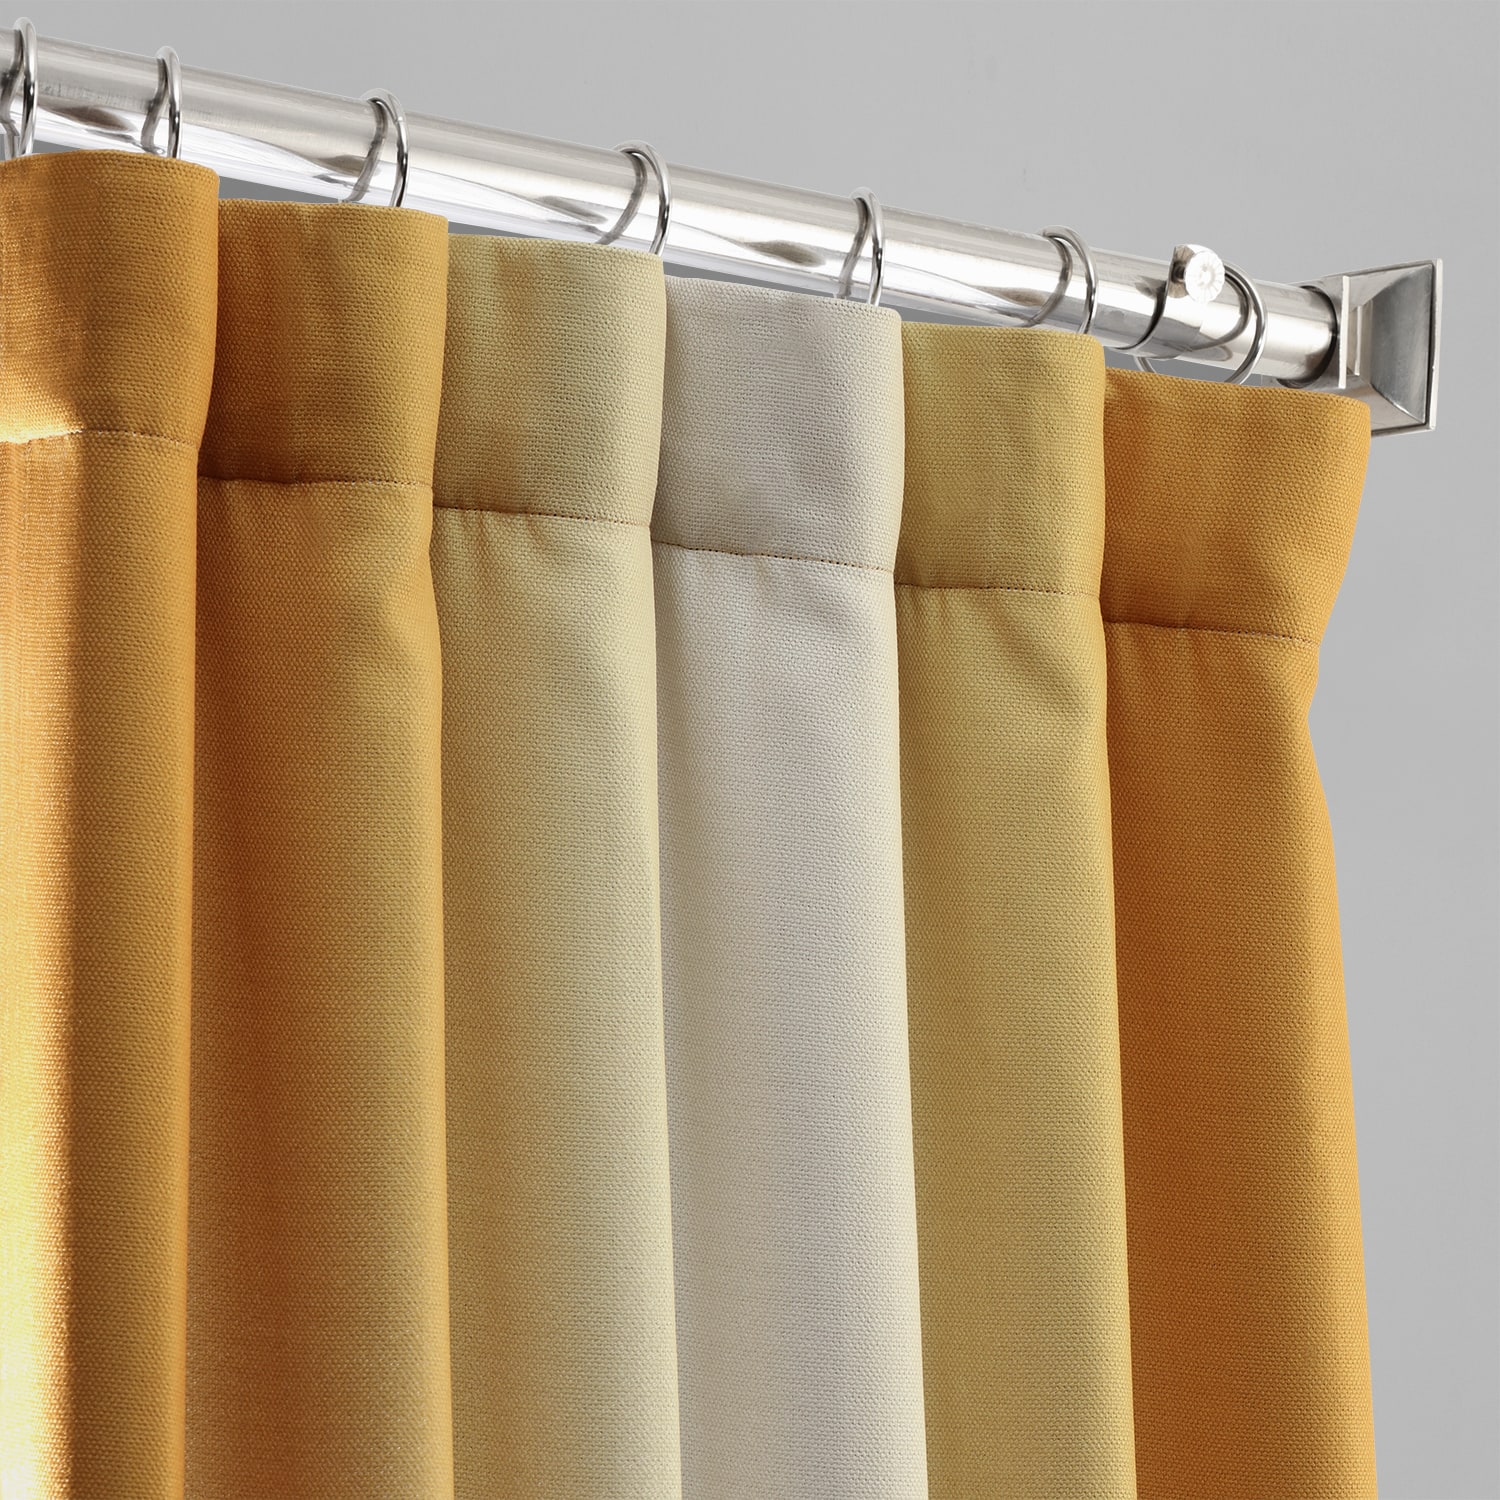 Parallel Gold Printed Linen Textured Blackout Curtain